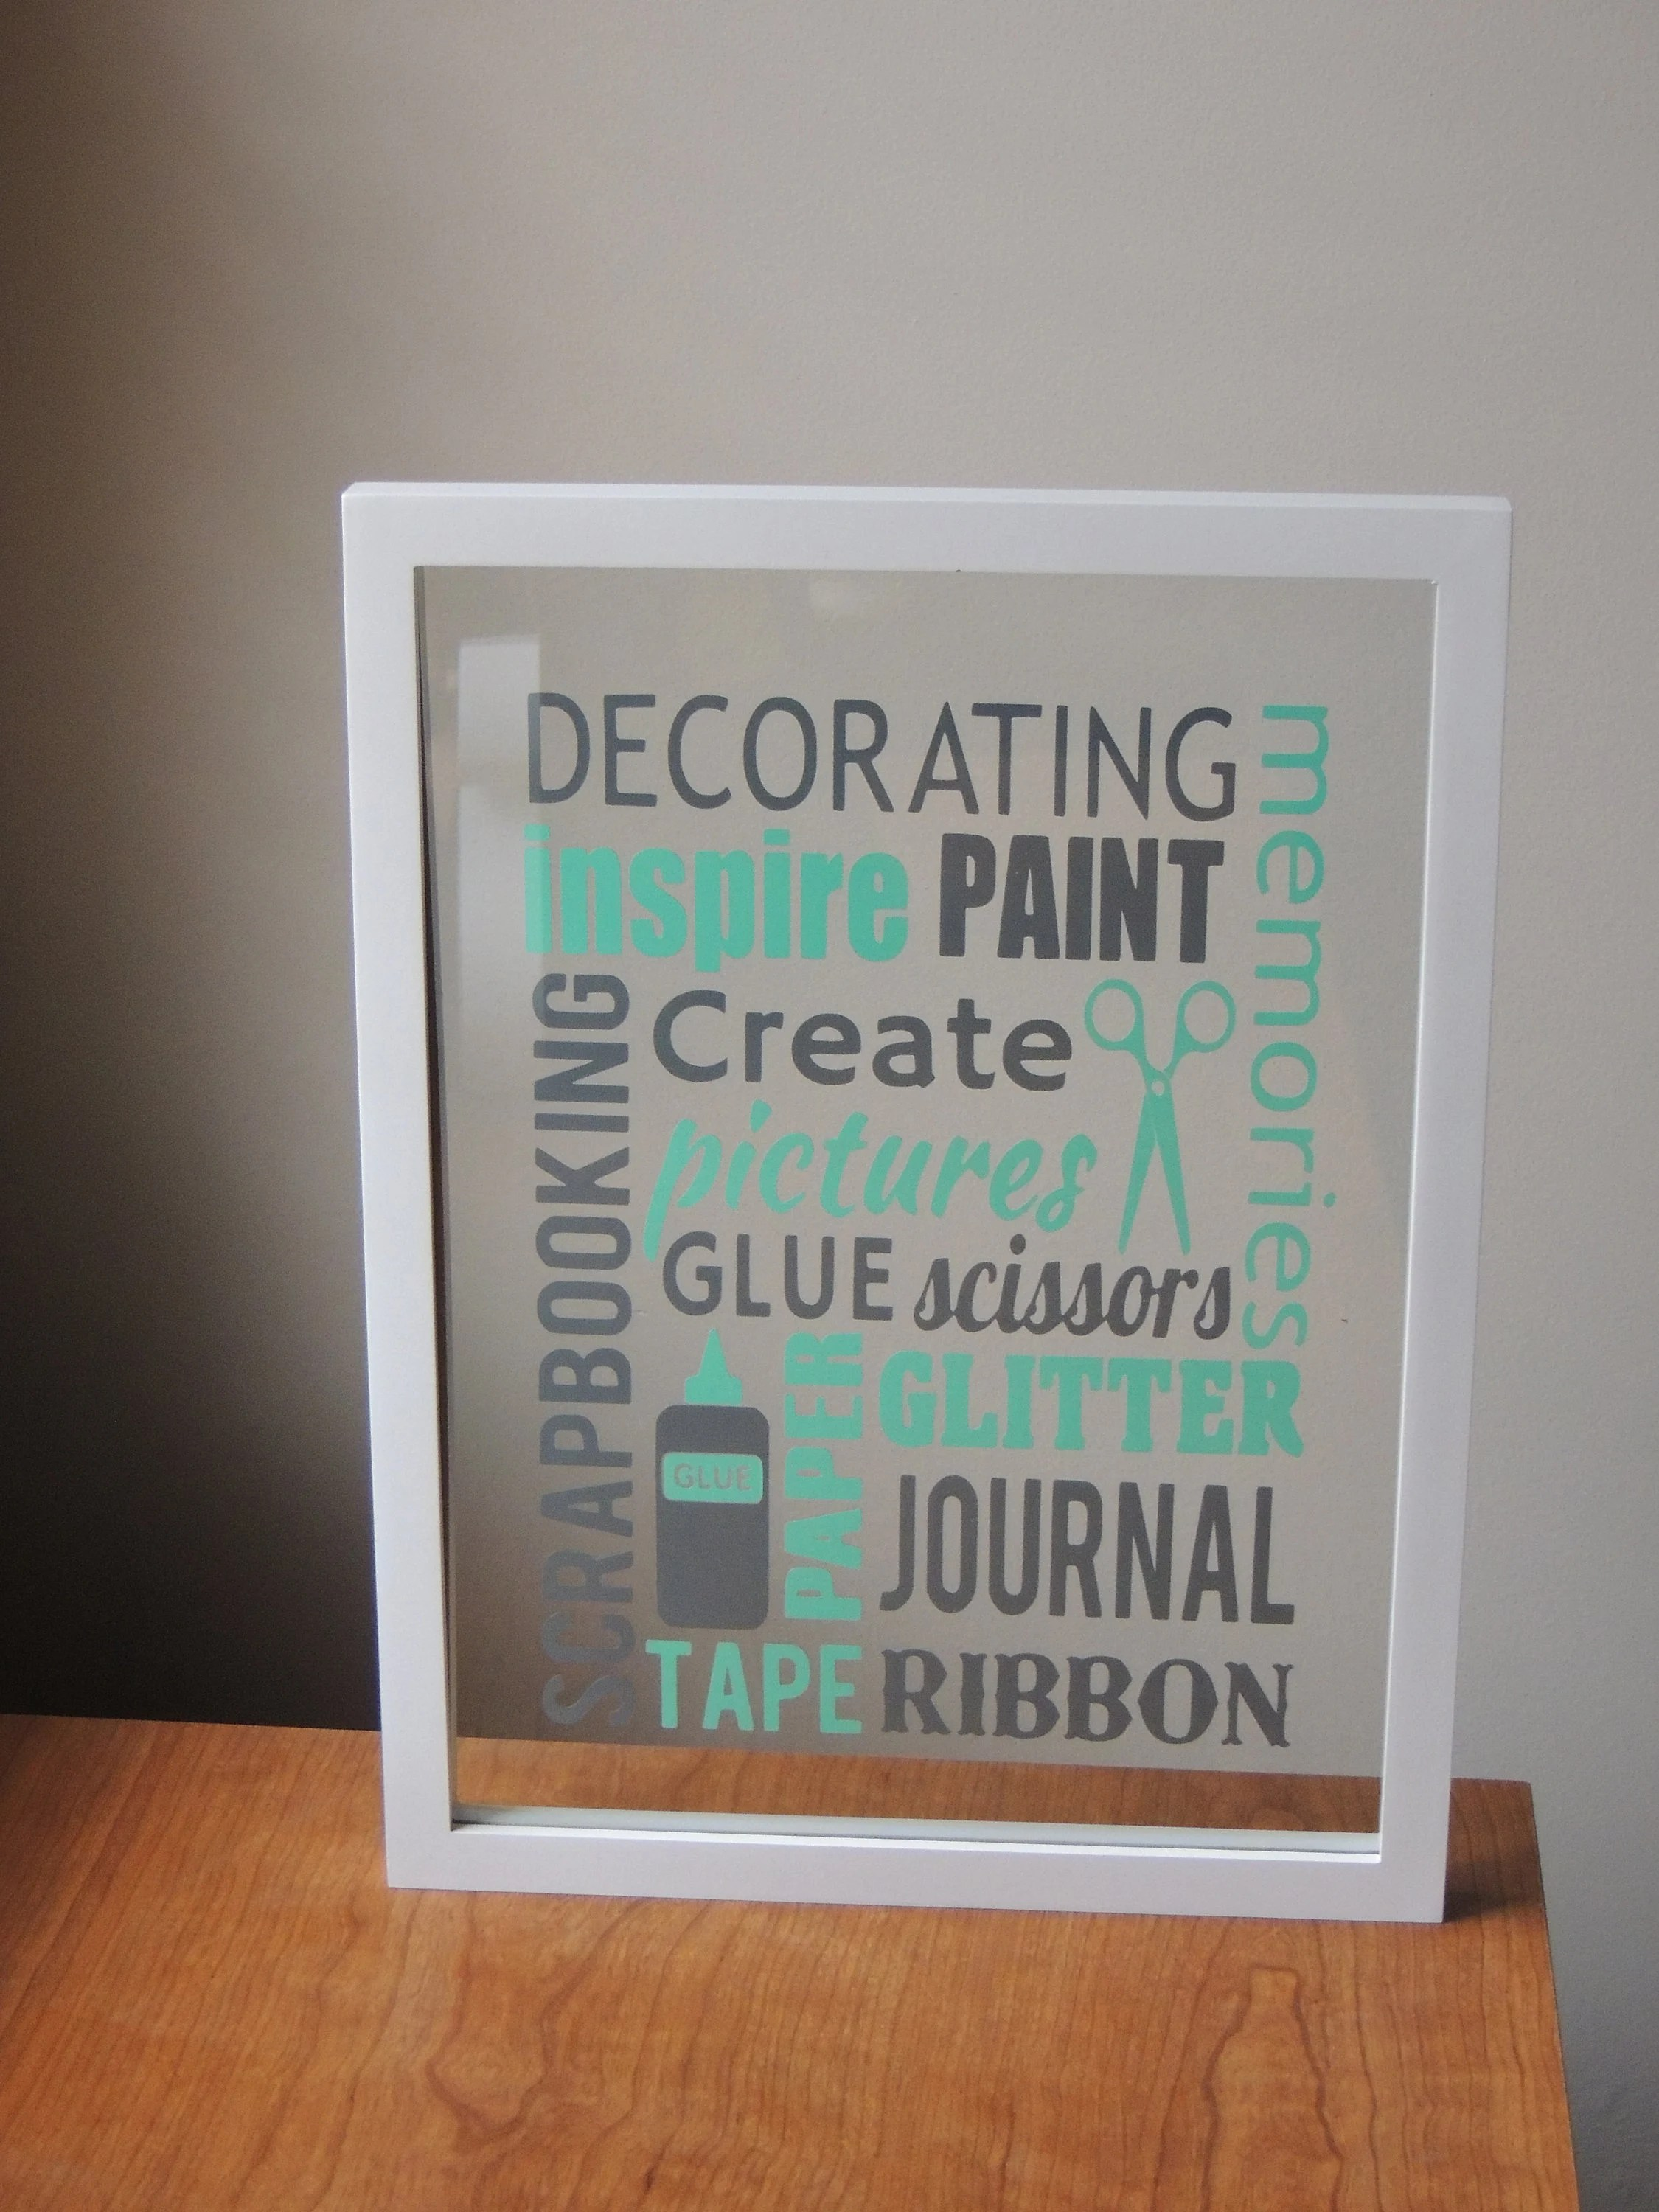 Art Decorating And Crafting Craft Room Framed Art Craft Room Decor Scrapbooking Decor Art Room Decor Floating Frame Crafting Framed Sign Arts And Crafts Decor